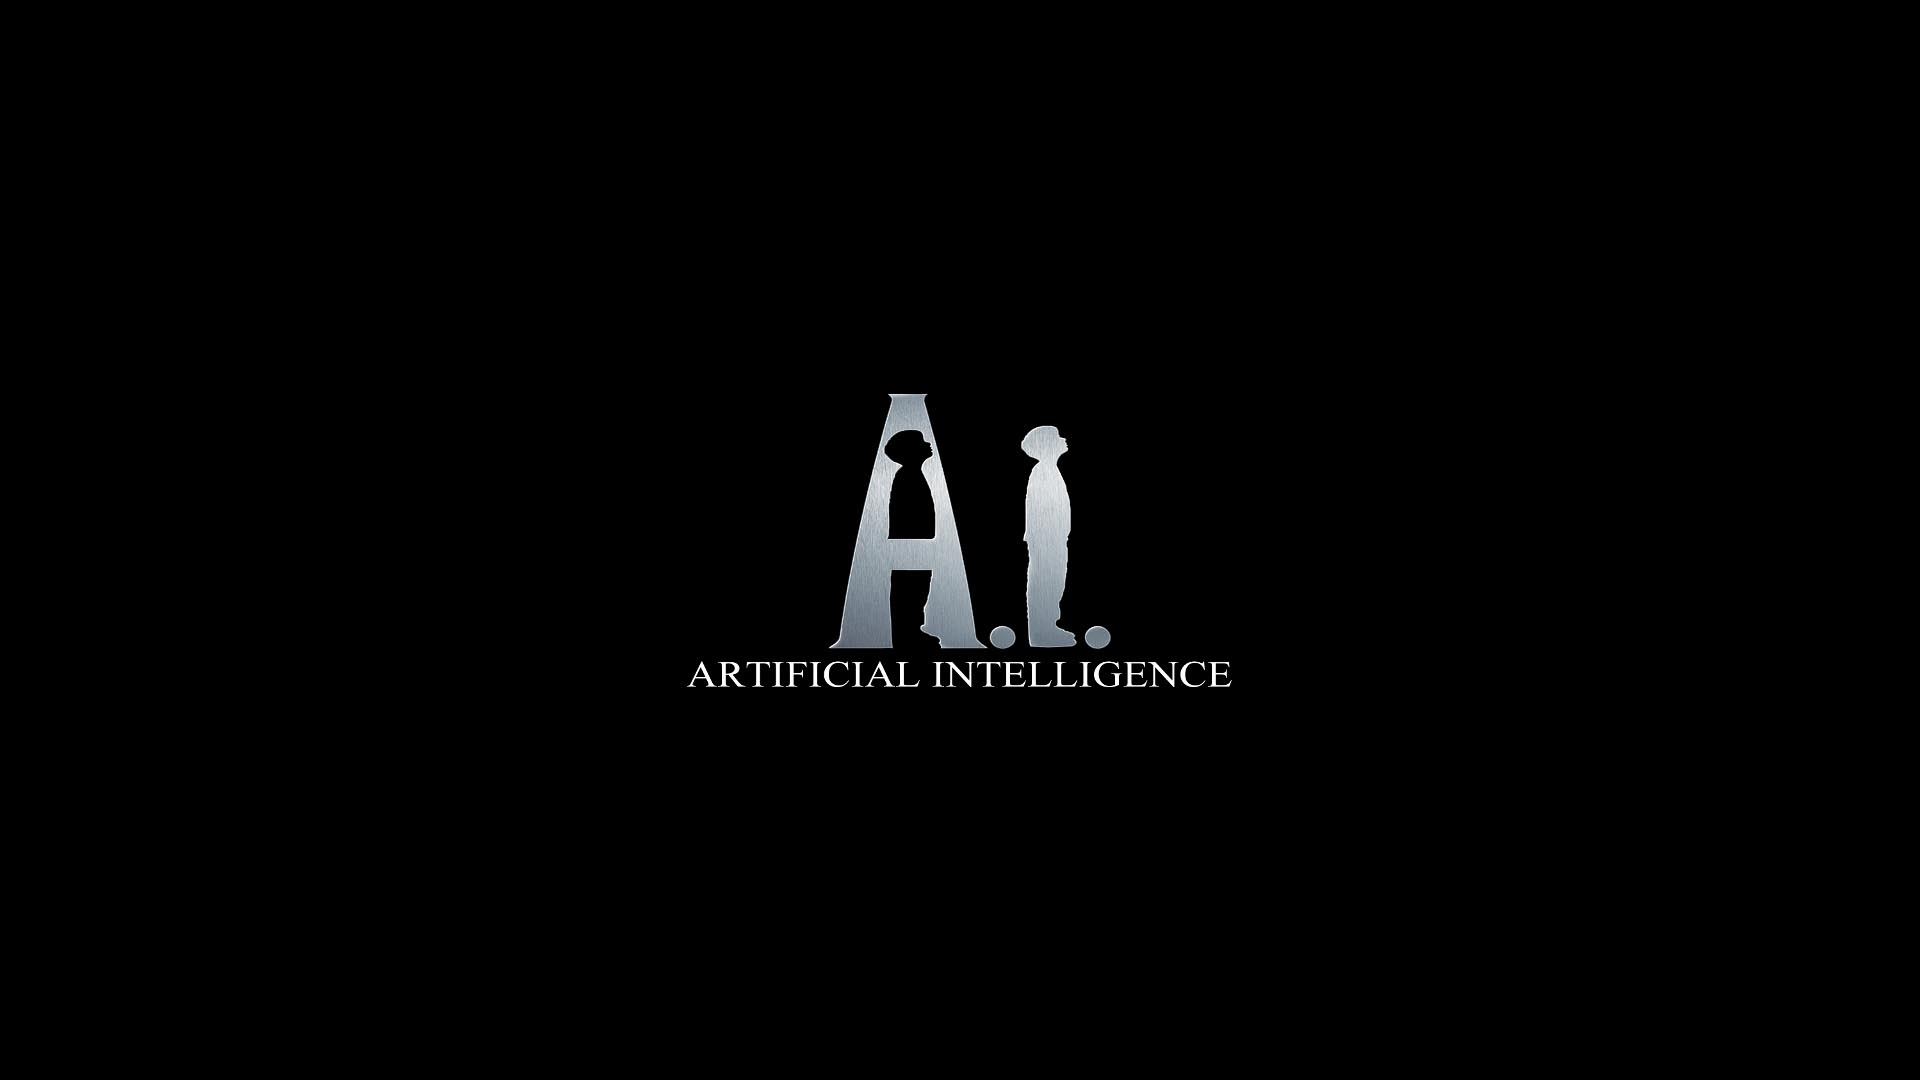 artificial intelligence wallpaper 1920x1080 - photo #6